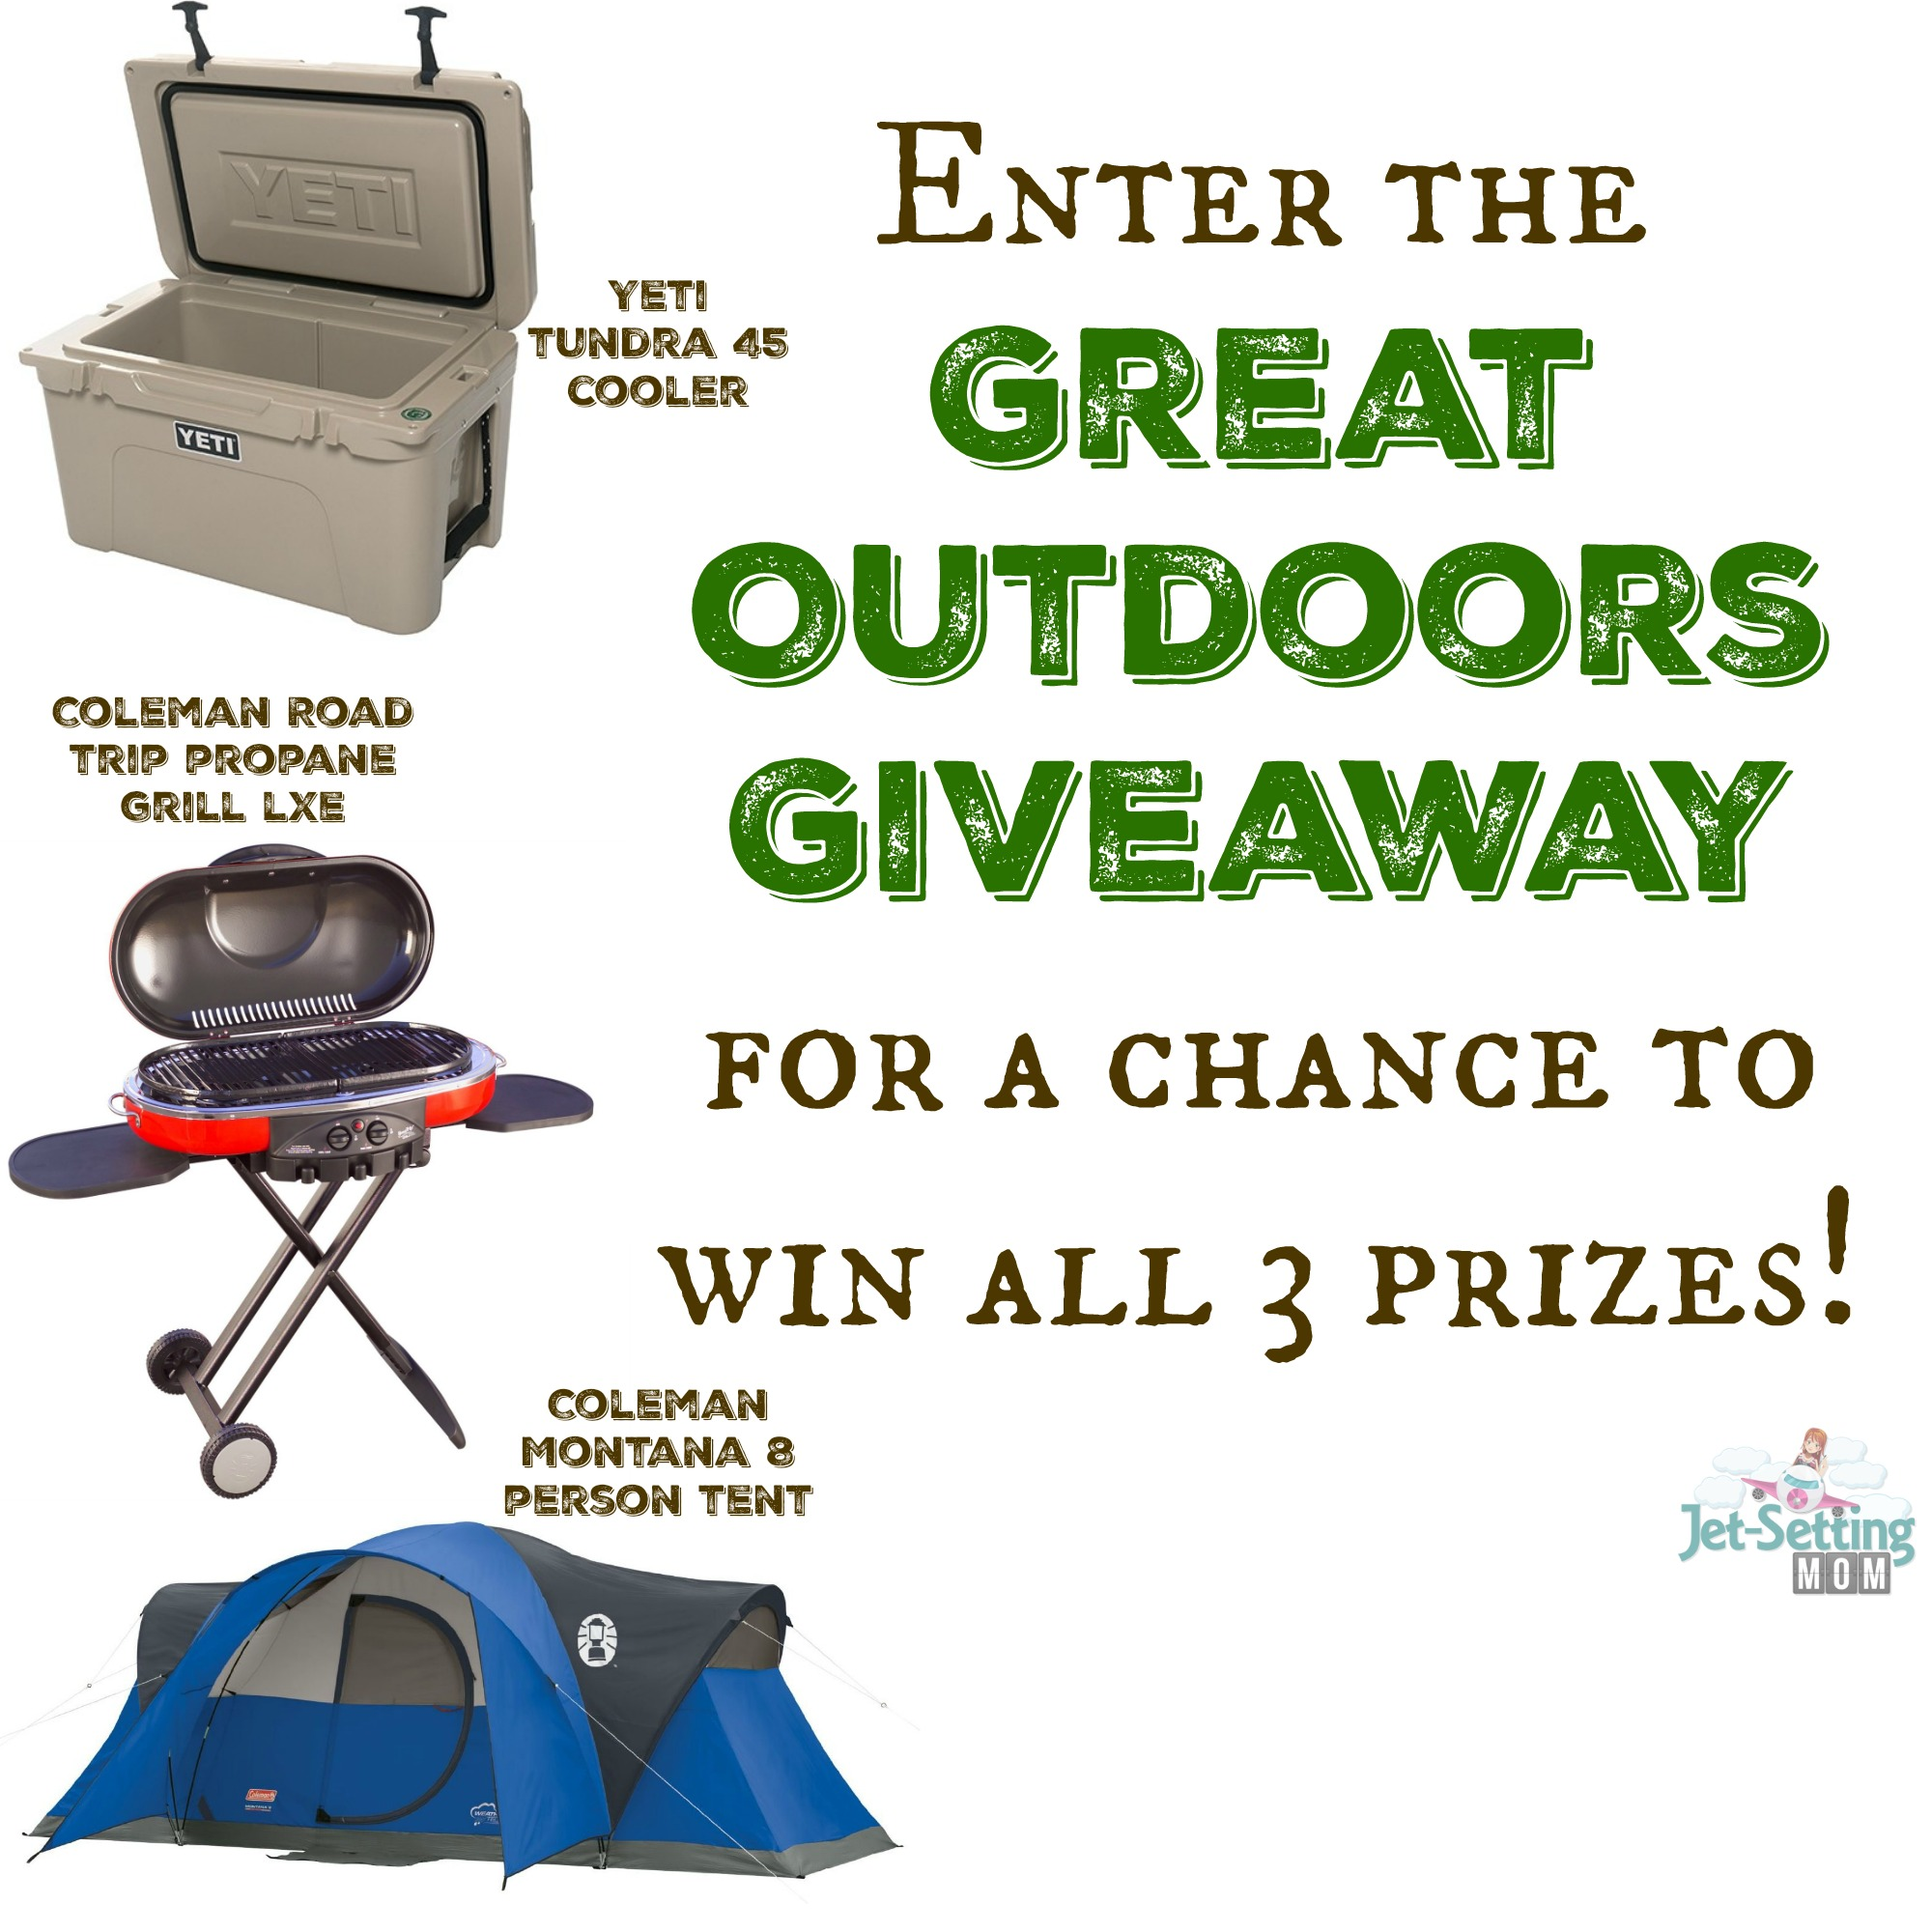 Enter the great outdoors giveaway for a chance to win a yeti cooler. coleman grill and tent!